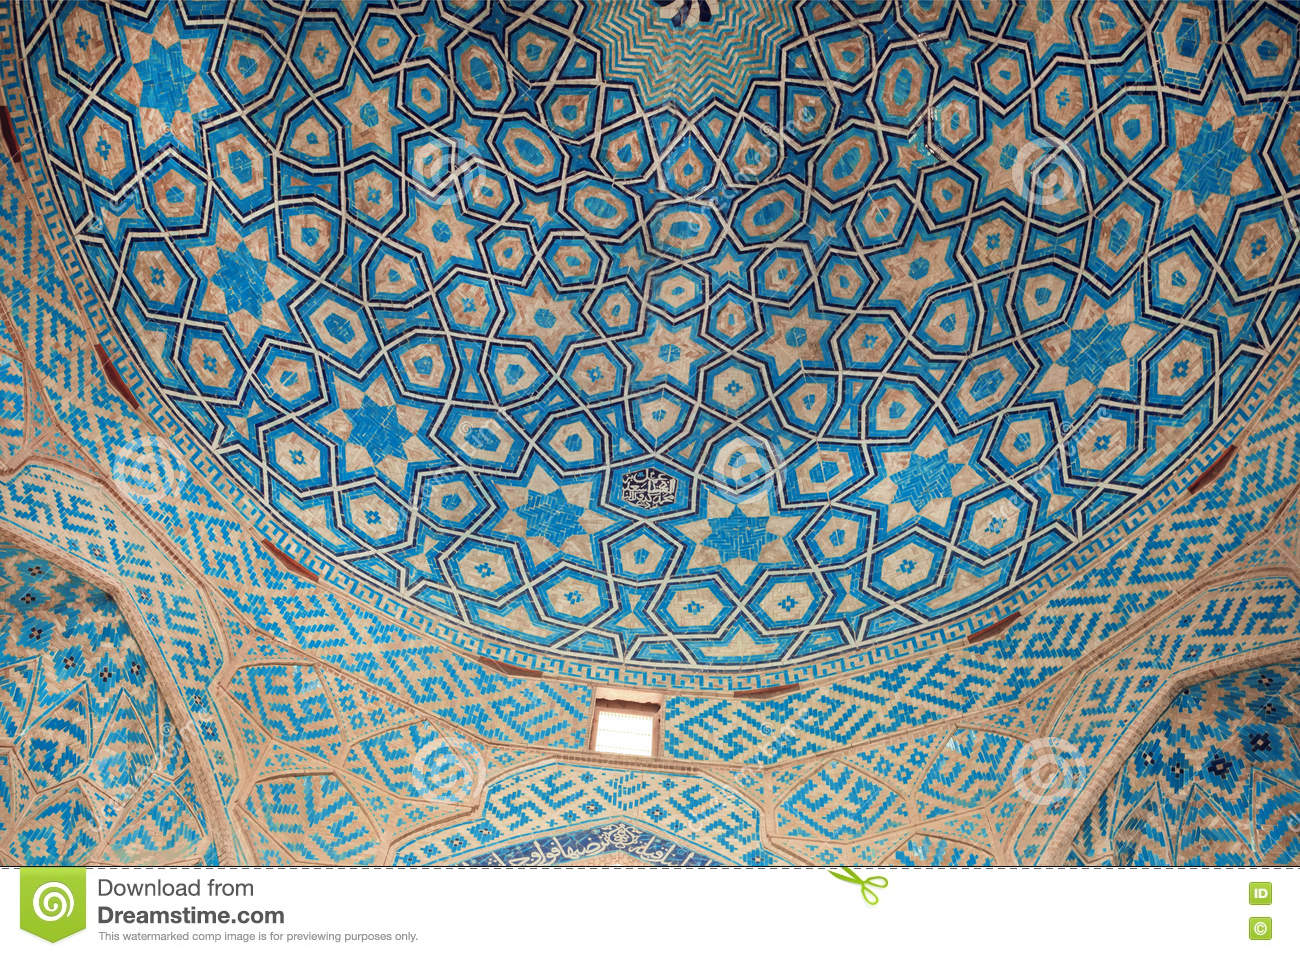 Patterns Of Ceramic Tile Of The Blue Ceiling Of The Historic Mosque